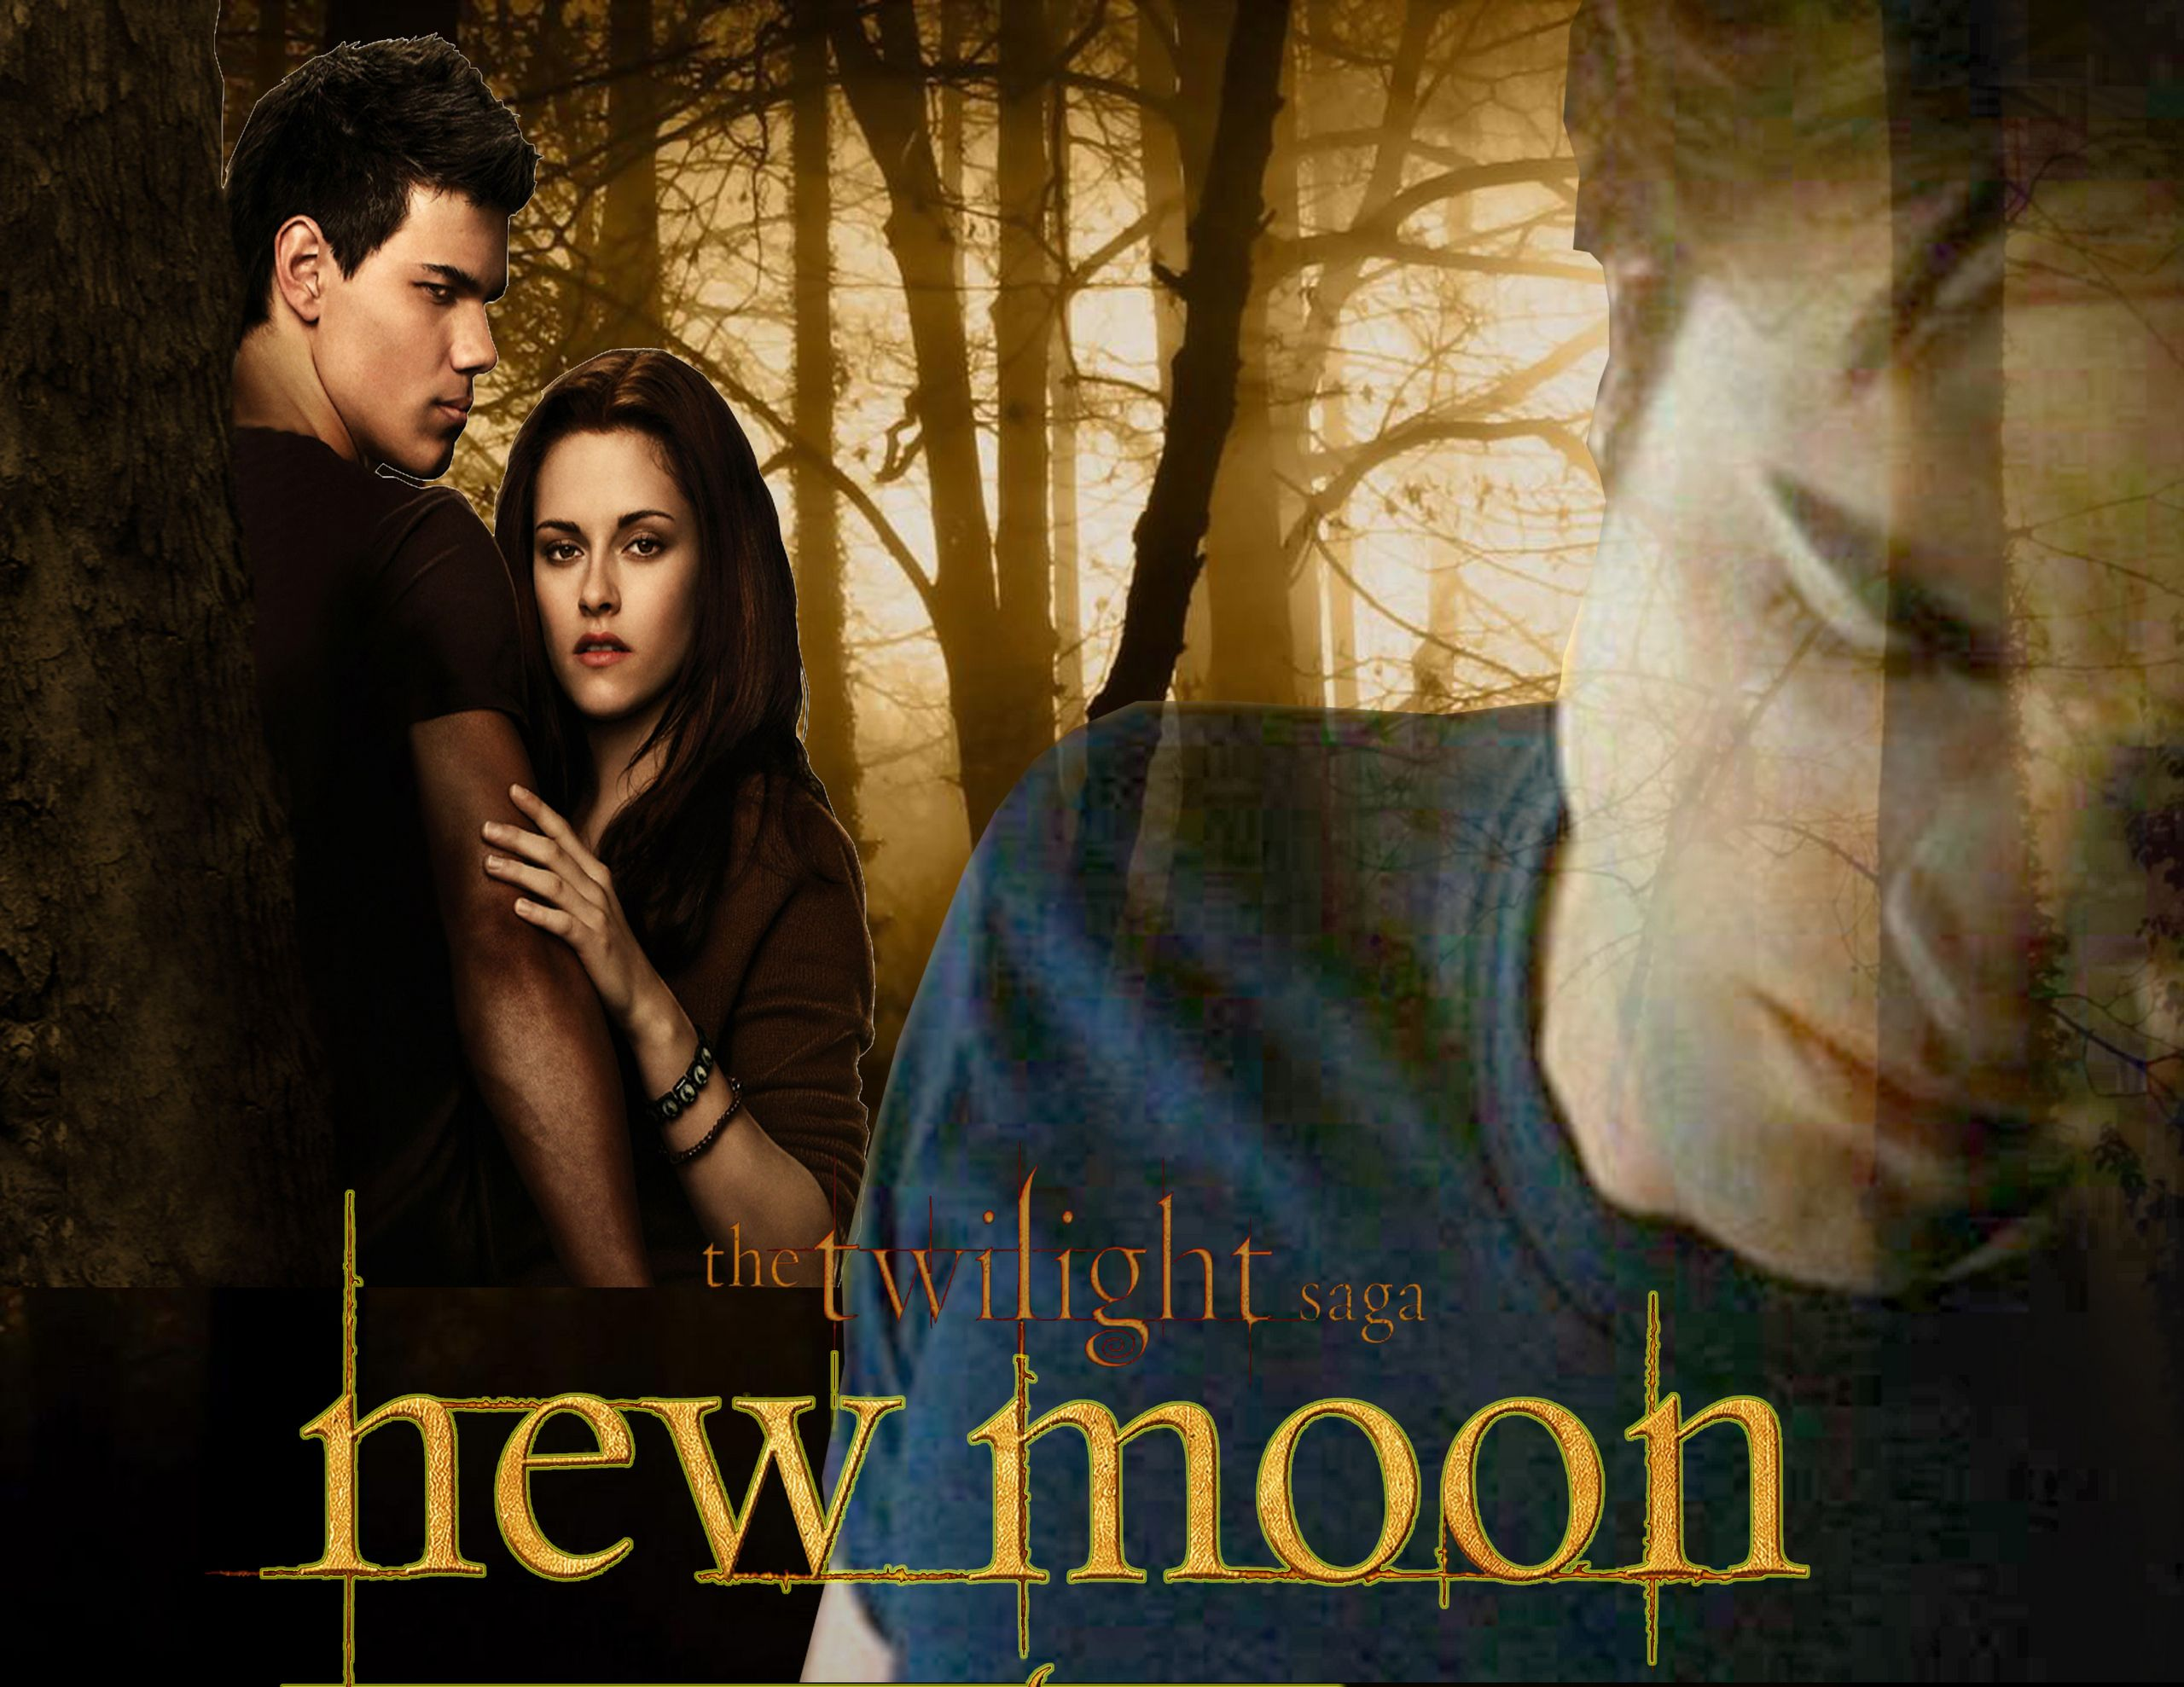 New Moon Movie Images New Moon Fanart Hd Wallpaper And Background